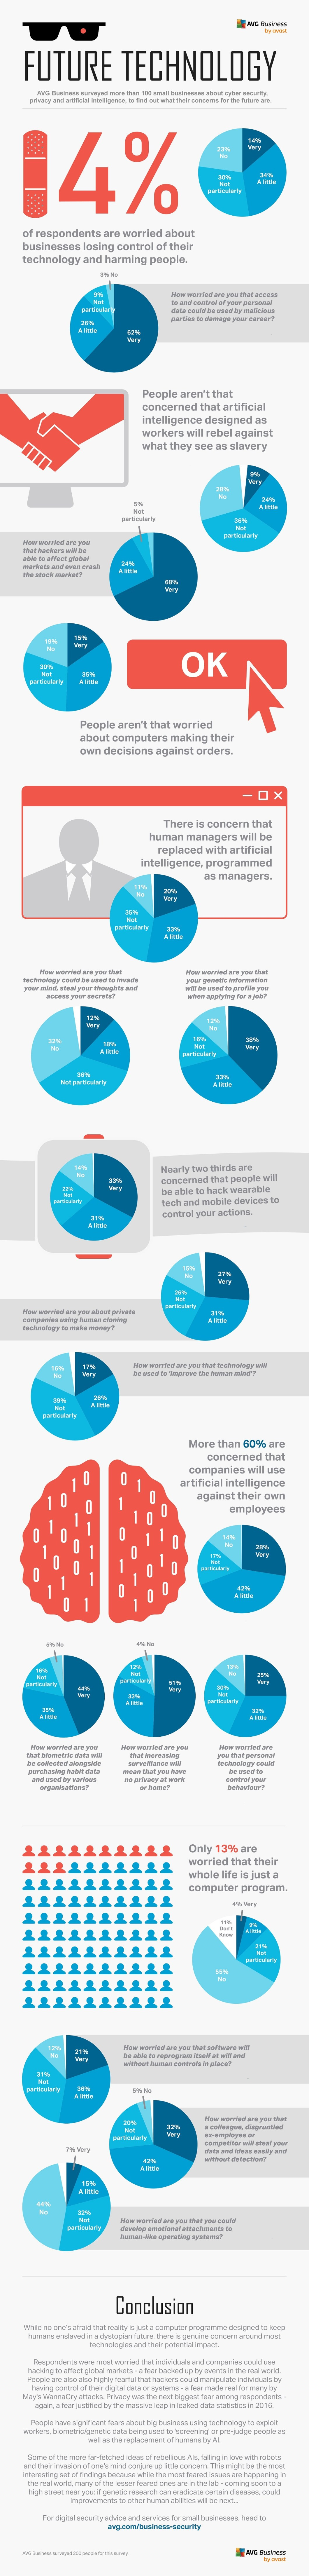 SMBs Perceptions and Fears about the Future of Technology - Infographic